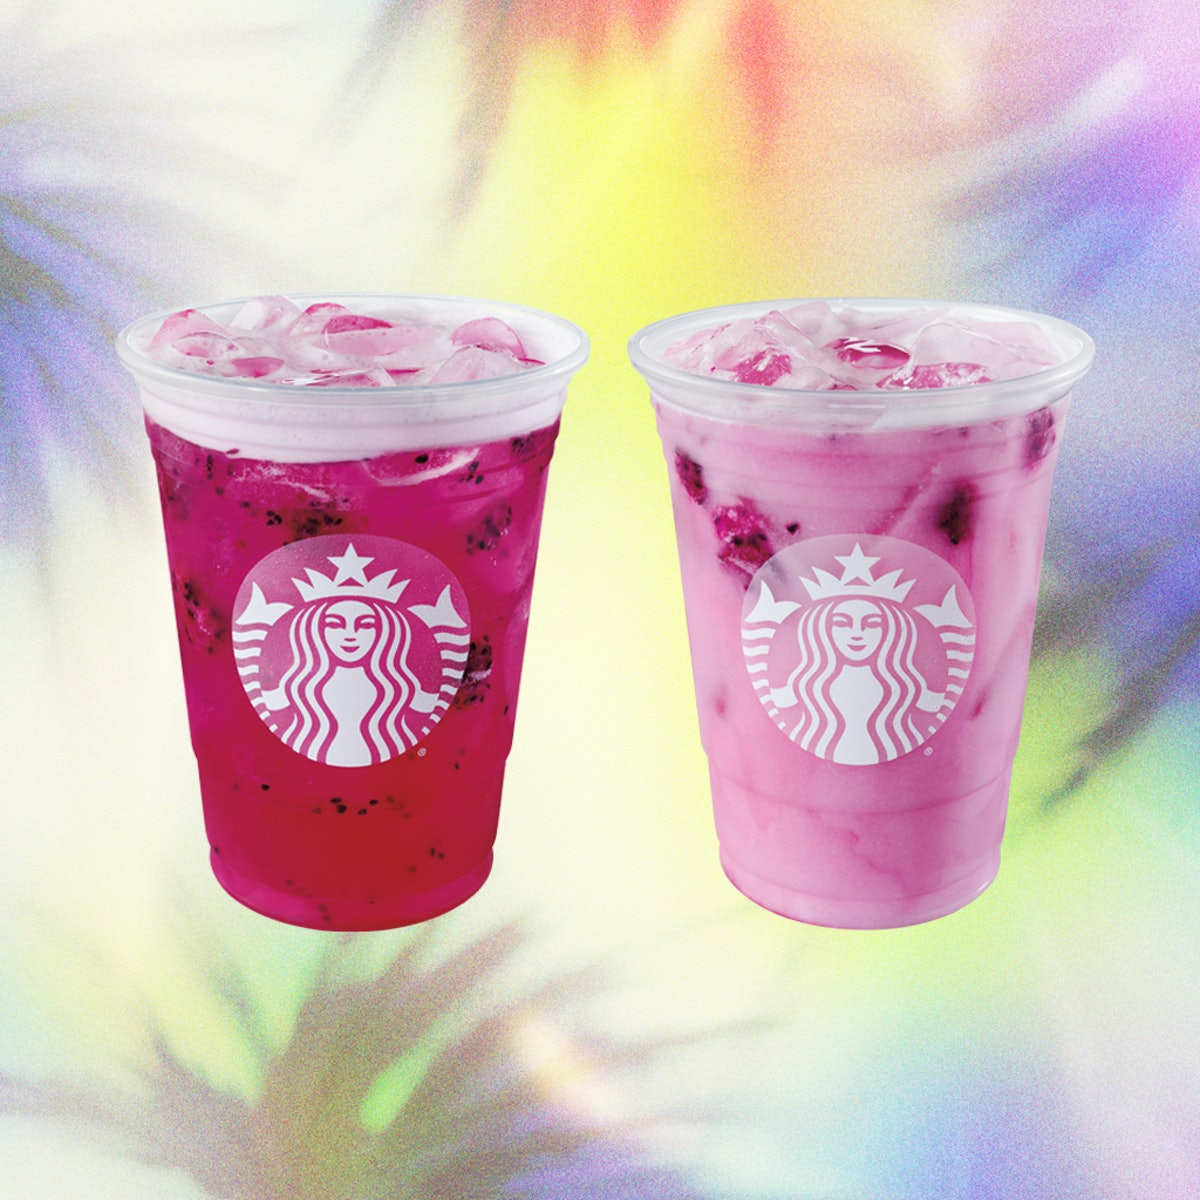 These Starbucks summer drinks will keep you refreshed all day long.